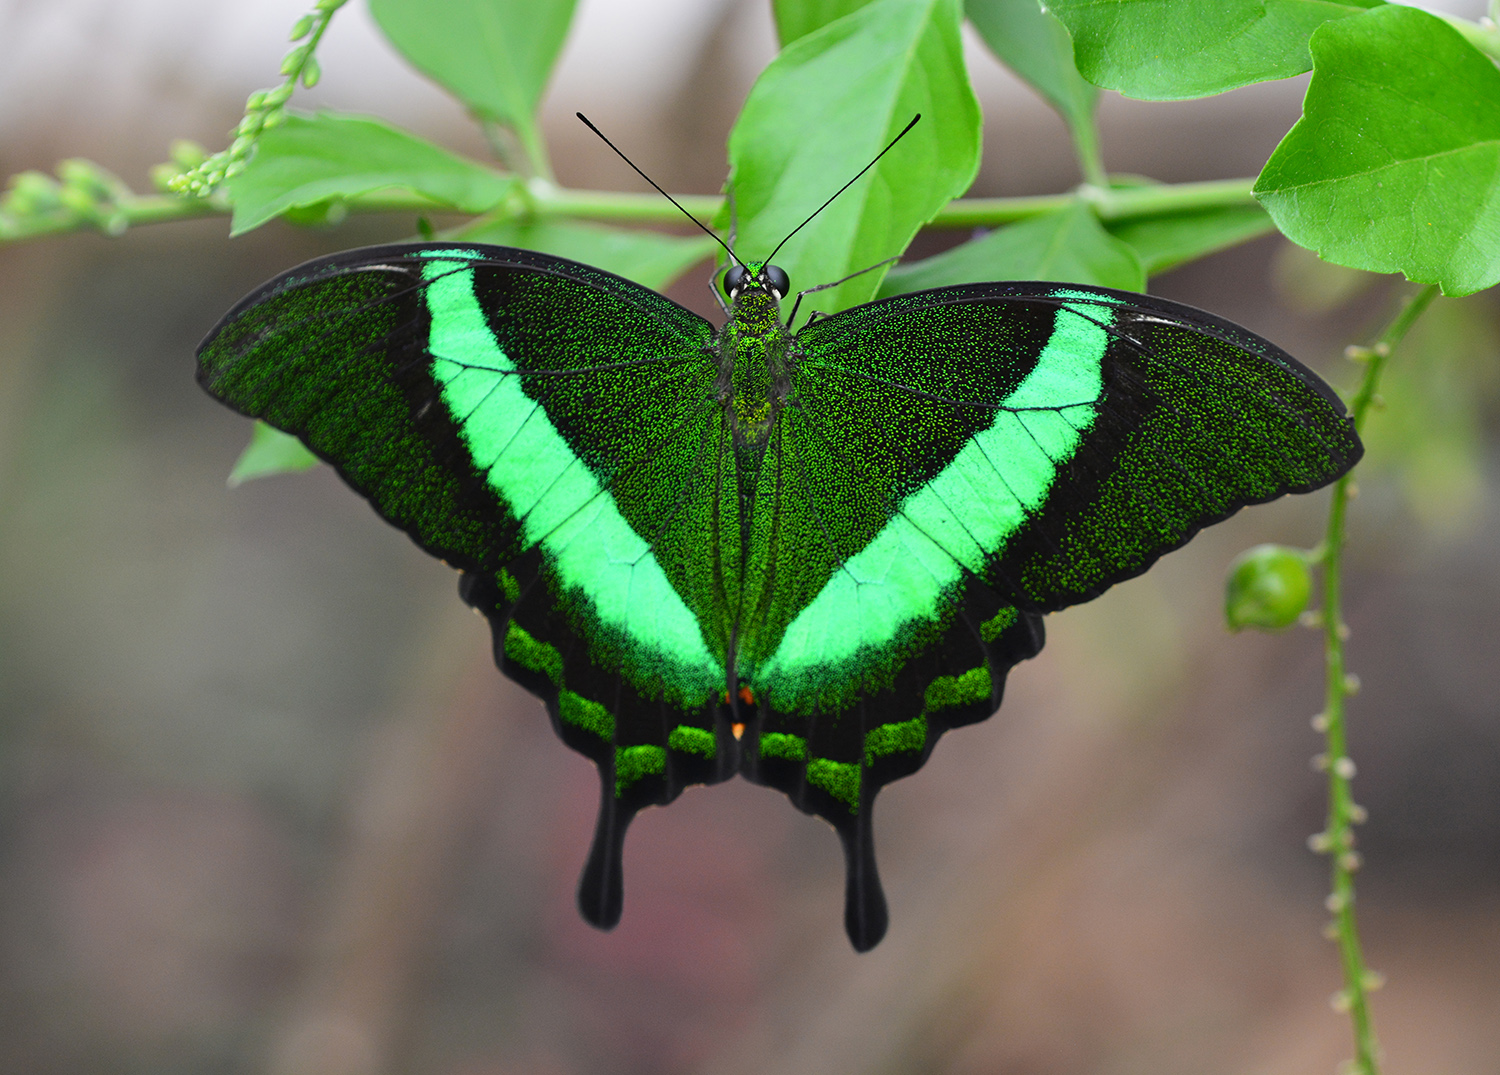 Emerald Swallow Tail - Digital (Shallow Depth of Field) - Name Withheld Per Request